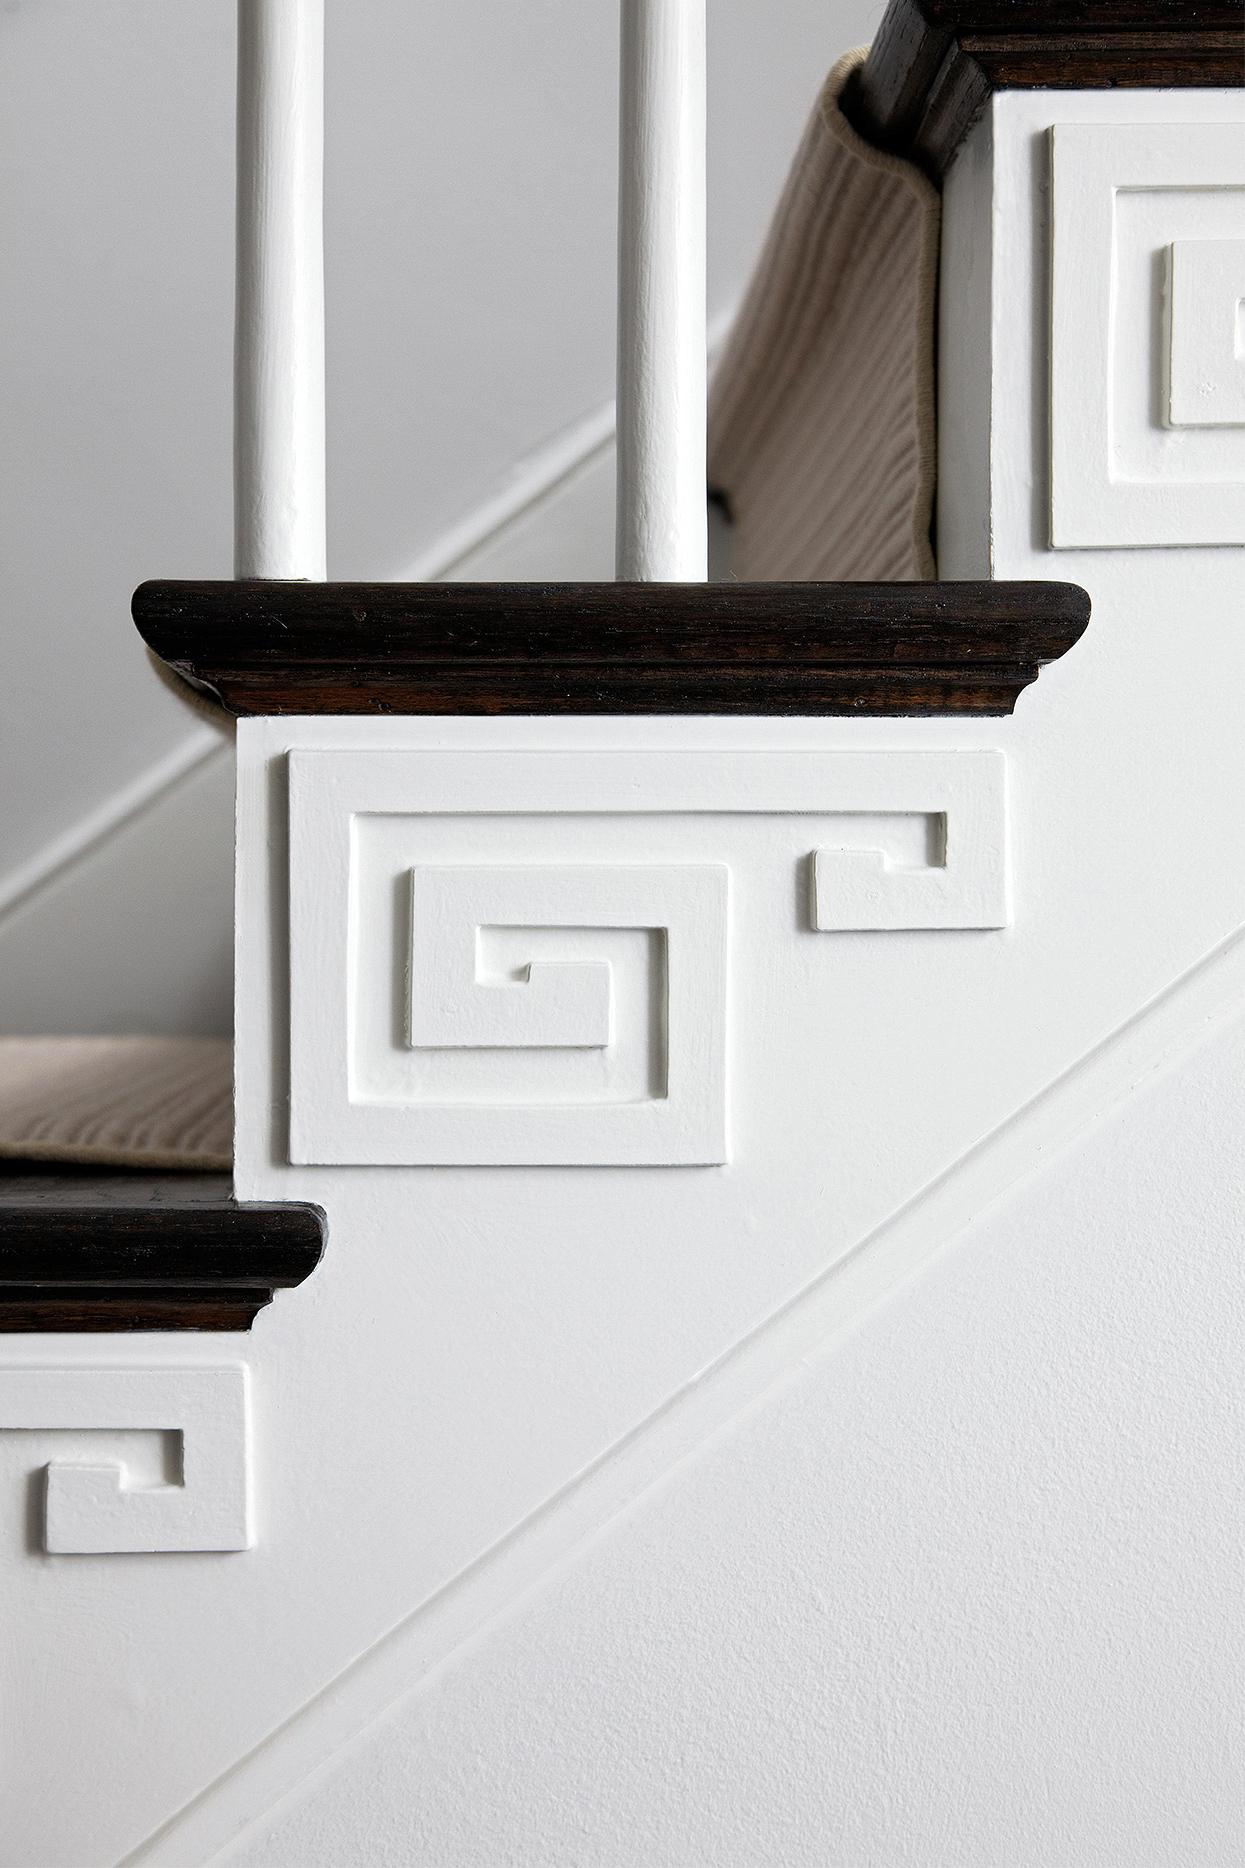 detail of staircase with decorative brackets on skirtboard